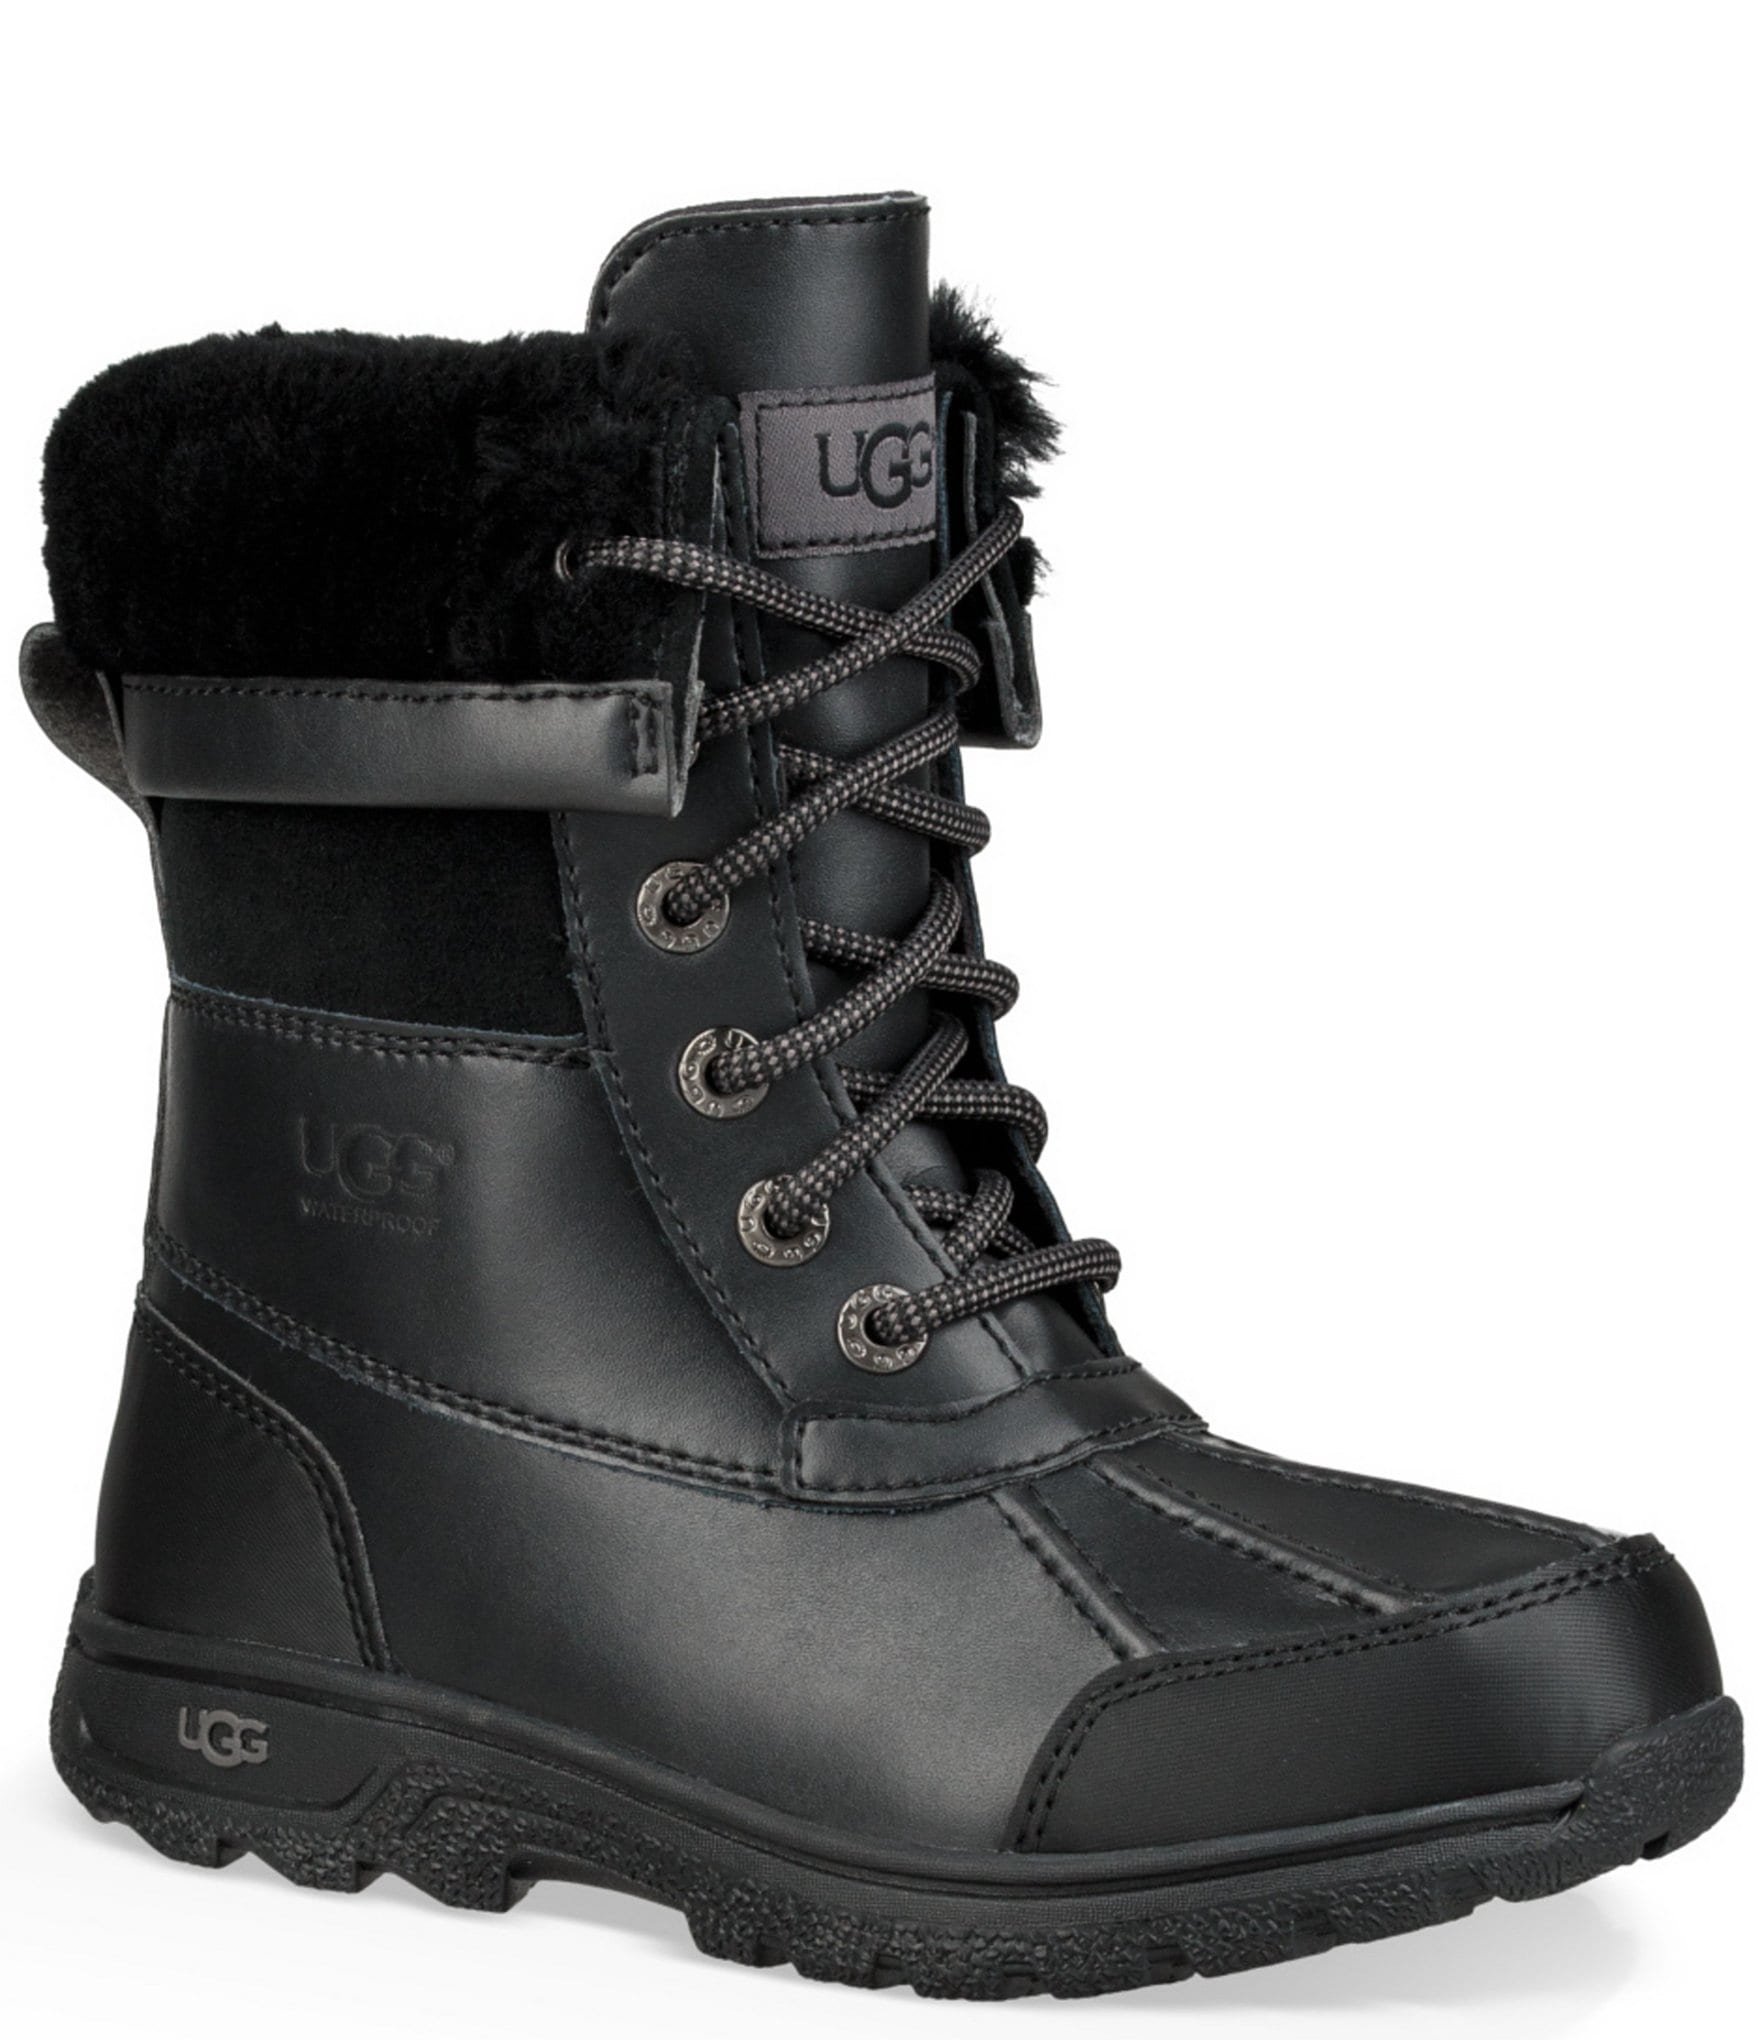 38bffab351f UGG® Kid's Butte II Waterproof and Leather Winter Boot